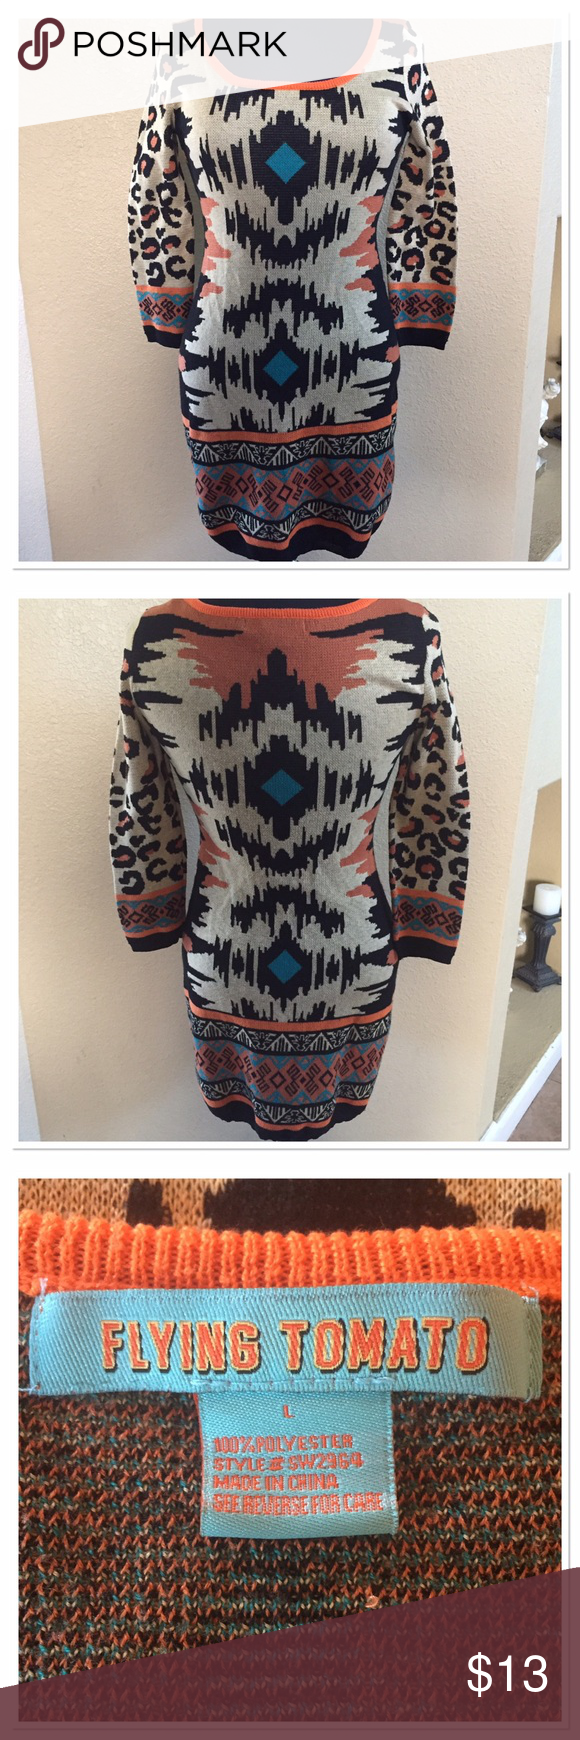 Flying Tomato tribal sweater dress Super cute ,  tribal print sweater dress .  Tan and orange color.  33.5 inches in length shoulder to bottom.  And bust measures 33 inches.  Gently used. Flying Tomato Dresses Mini